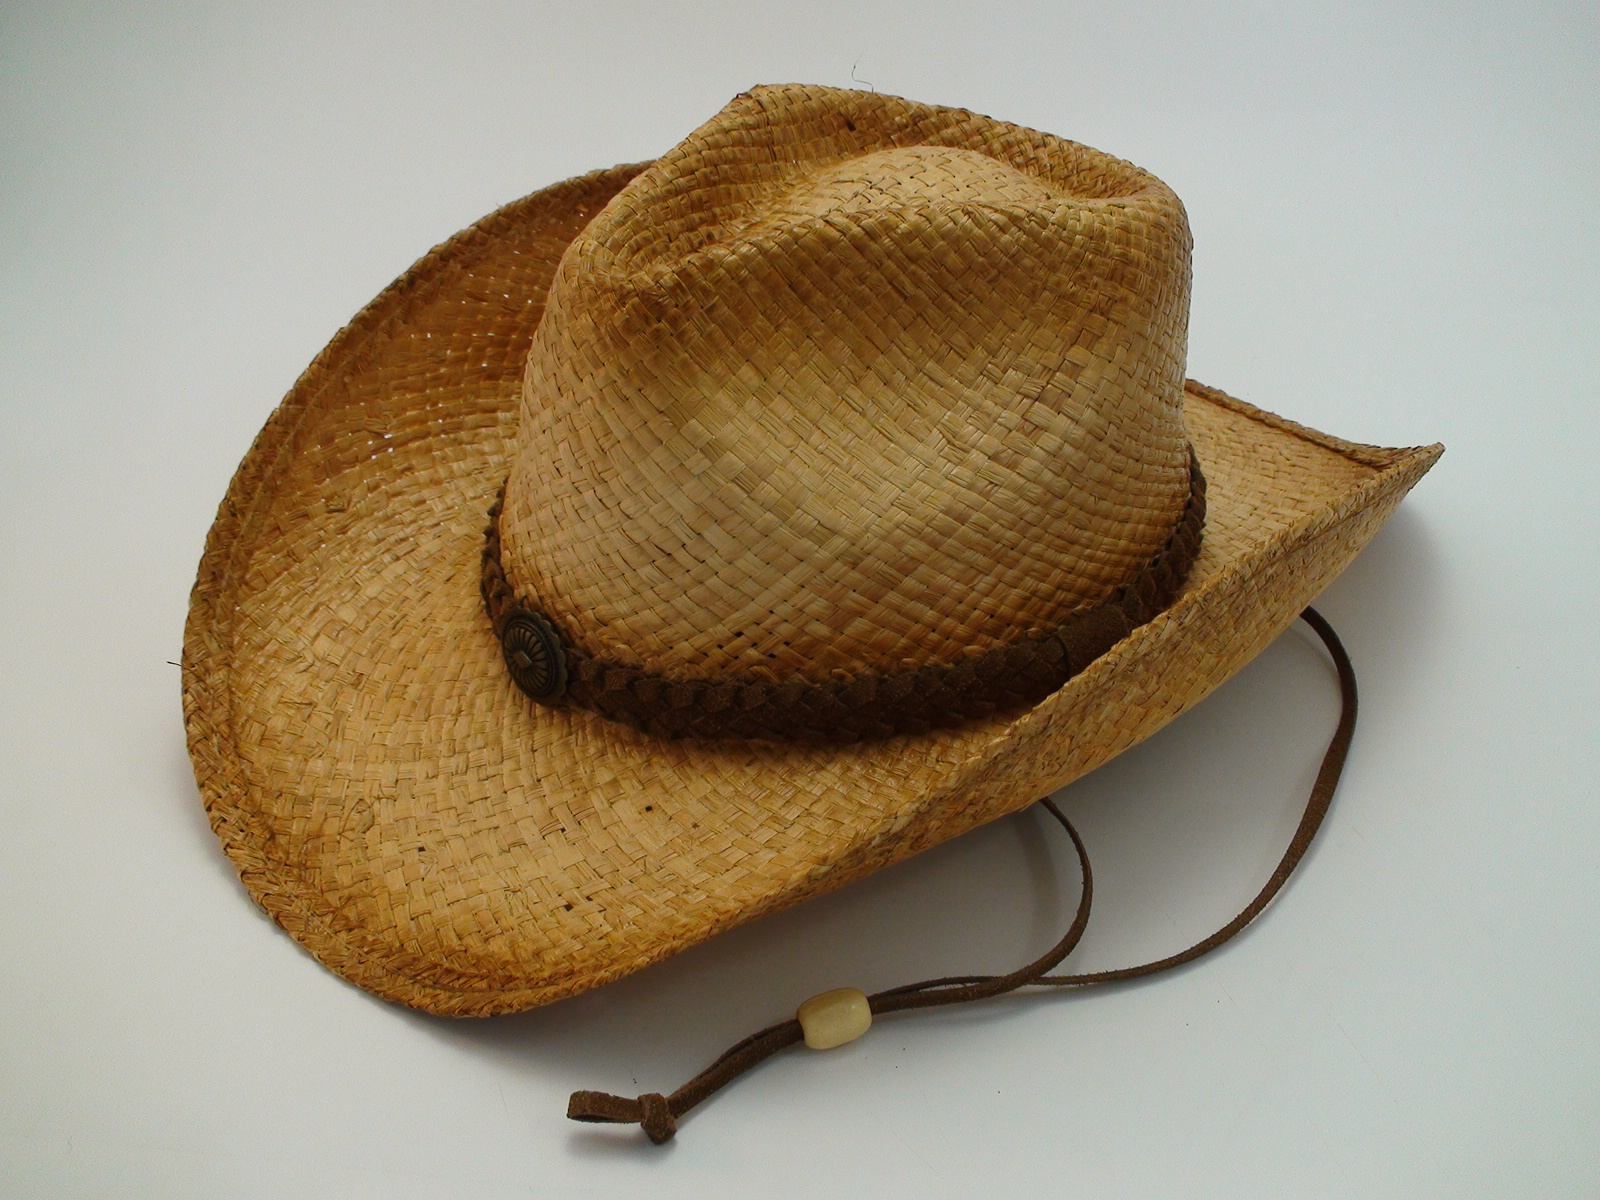 64fcf6cbb1c51 NEW Western Straw Cowboy Hat with Leather Hat Band and Chin Cord One Size